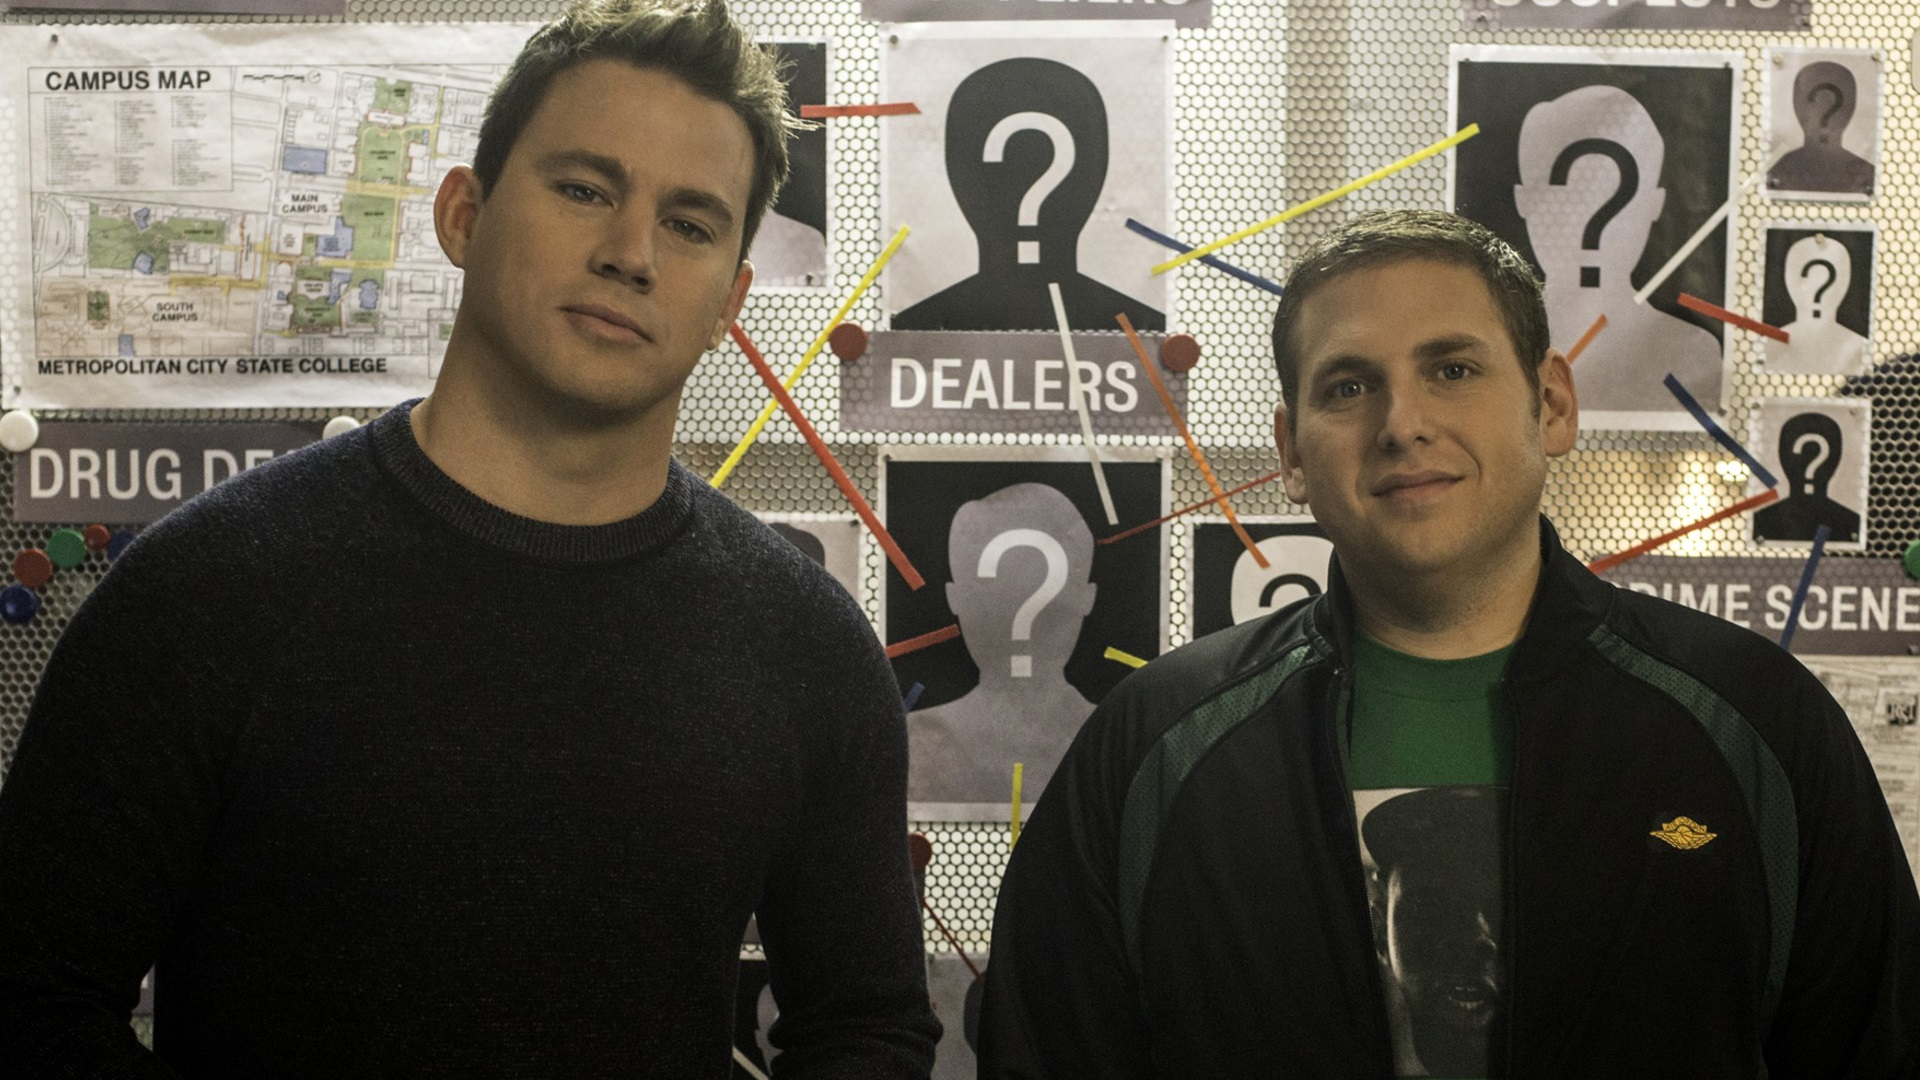 review 22 jump street plays safe riotous repeat